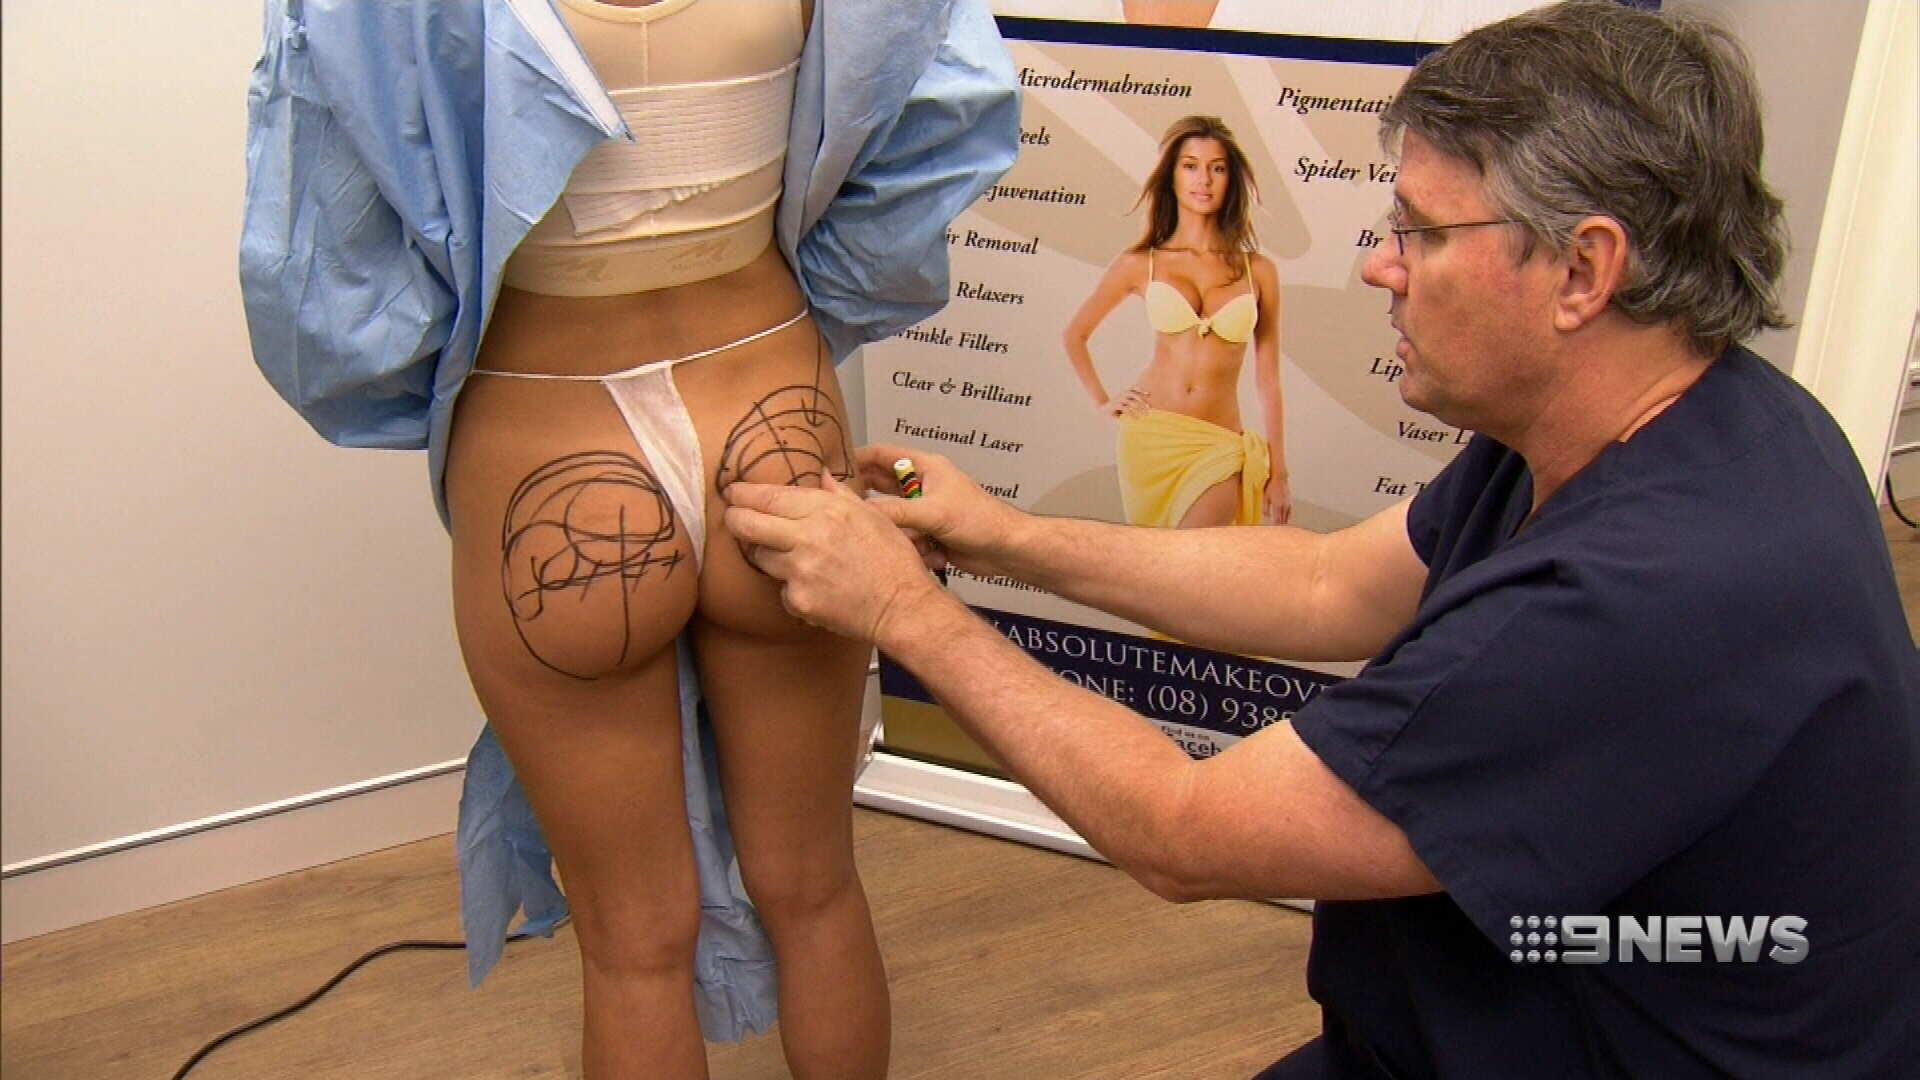 Requests for butt lifts skyrocketing in WA